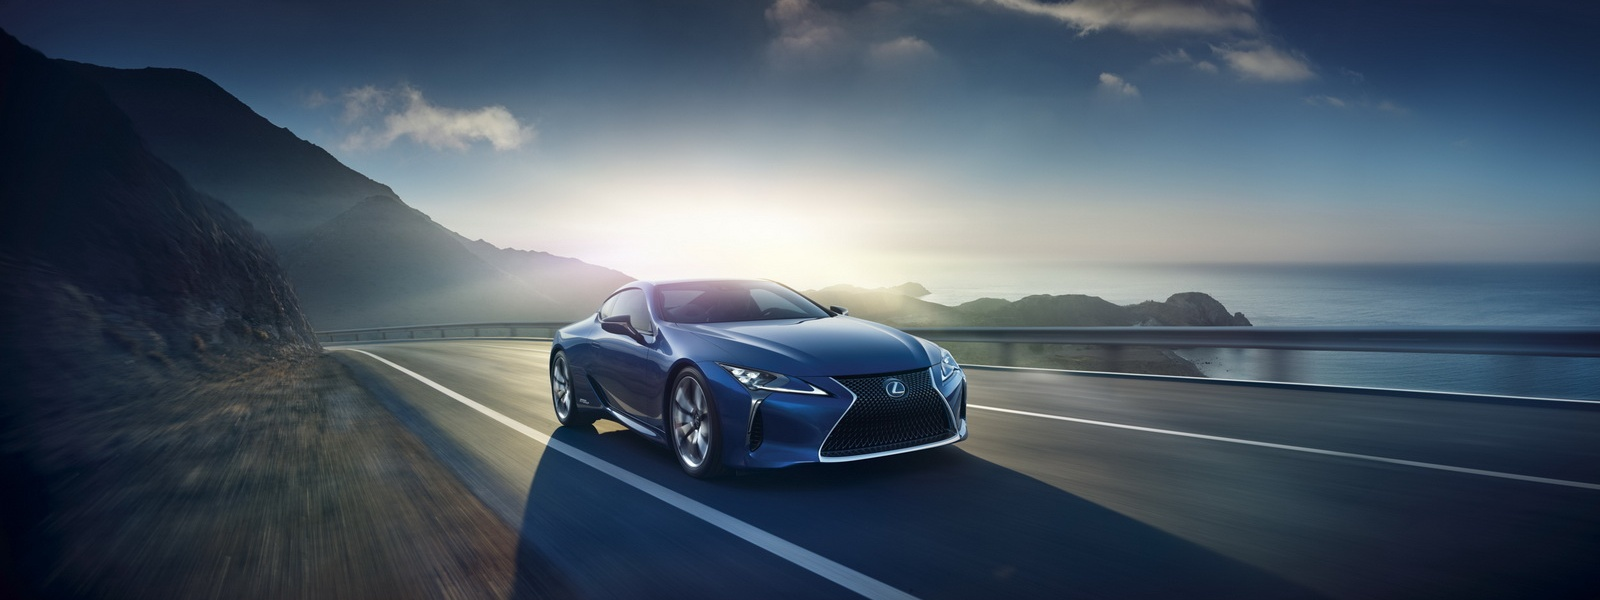 2018-lexus-lc-structural-blue-edition-9.jpg